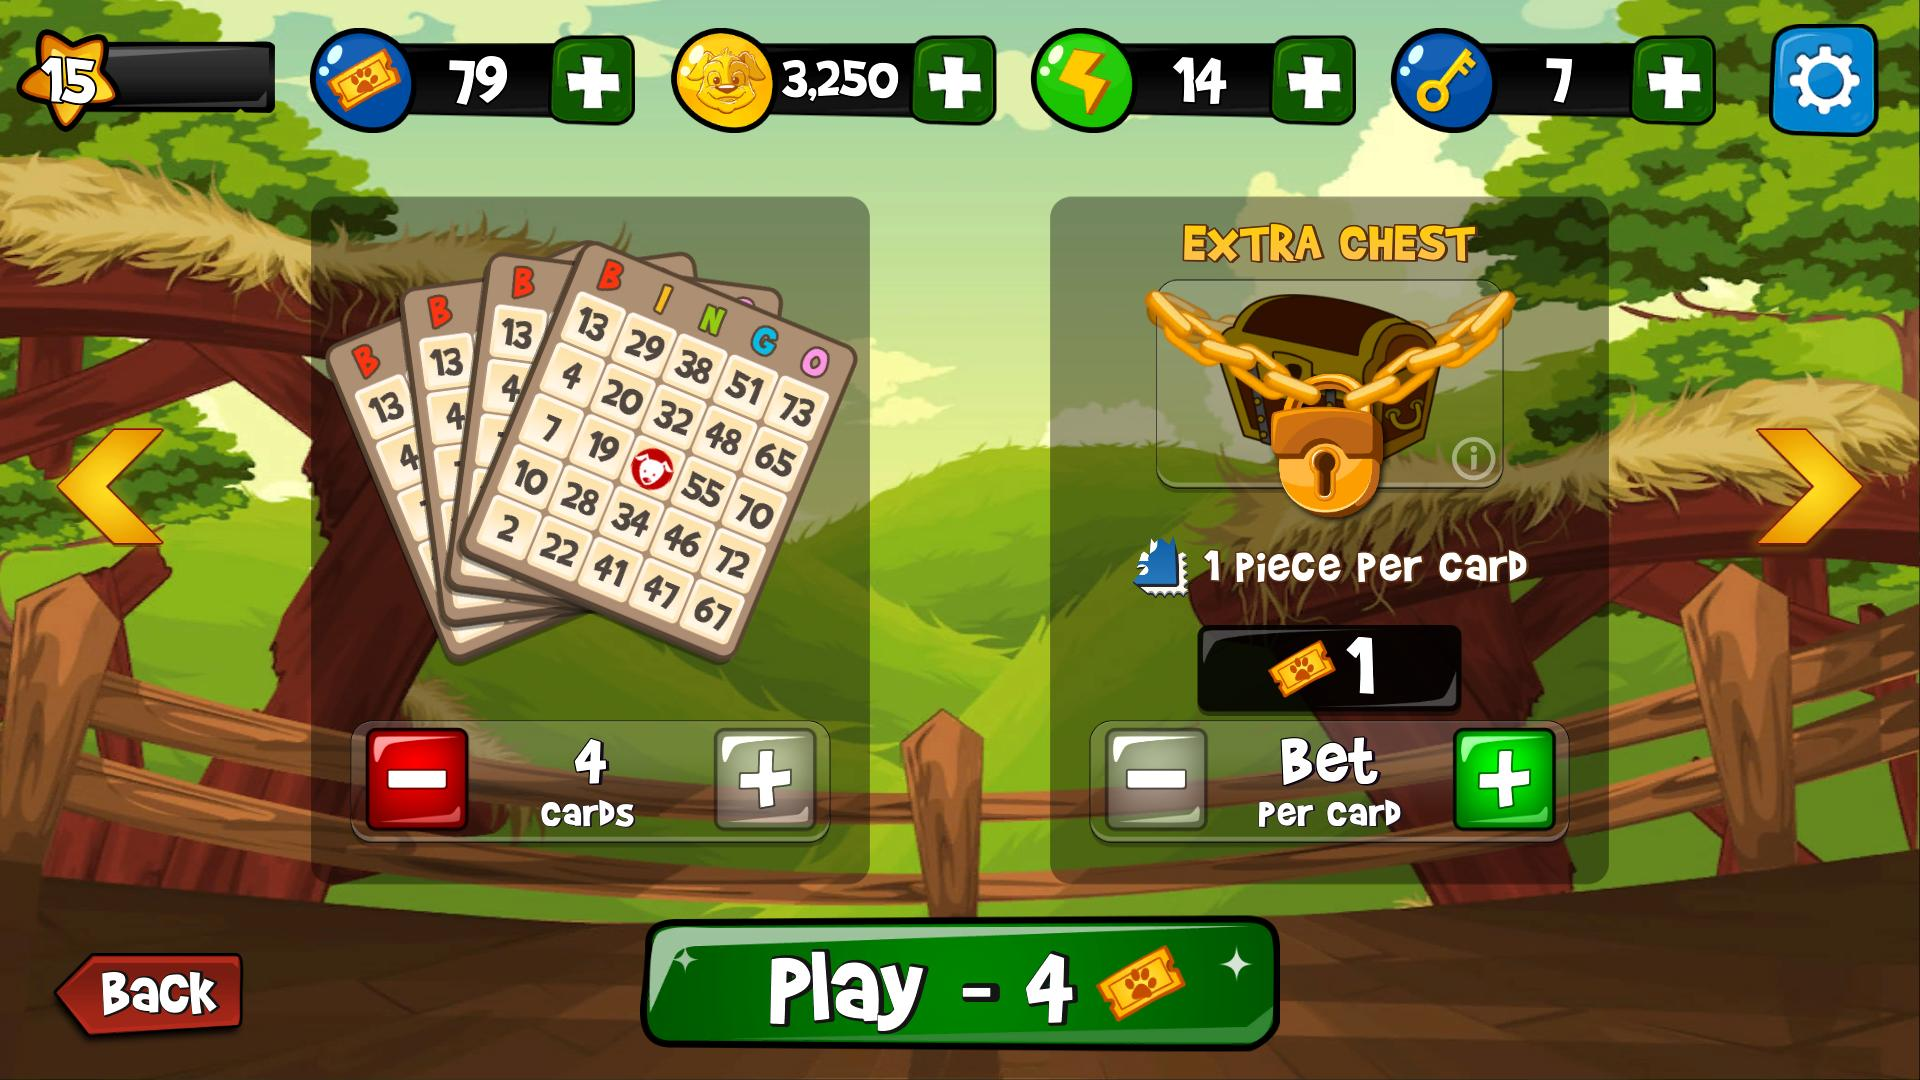 Bingo Abradoodle - Bingo Games Free to Play! 3.0.02 Screenshot 15